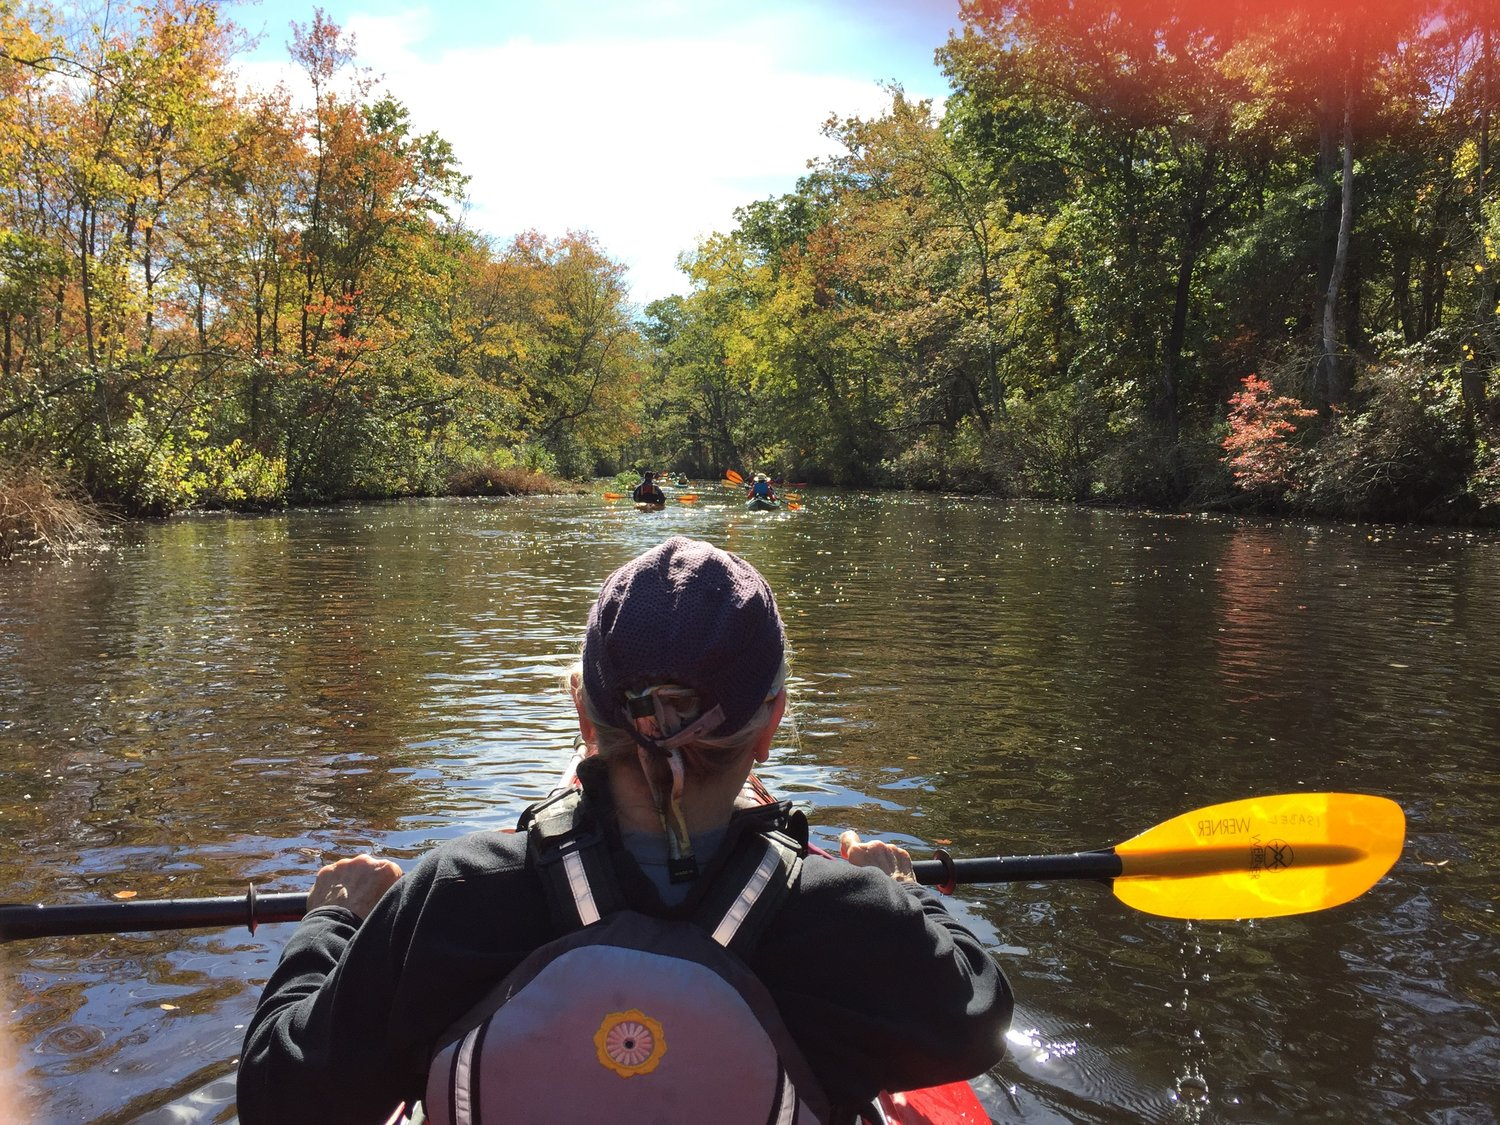 Photo of a man kayaking in a riverlike body of water. The foreground is the back of a man's head and back. He is sitting in a kayak wearing a lifejacket, holding a black and yellow paddle. In the background are trees with bright vibrant colors. Several other kayakers are ahead.